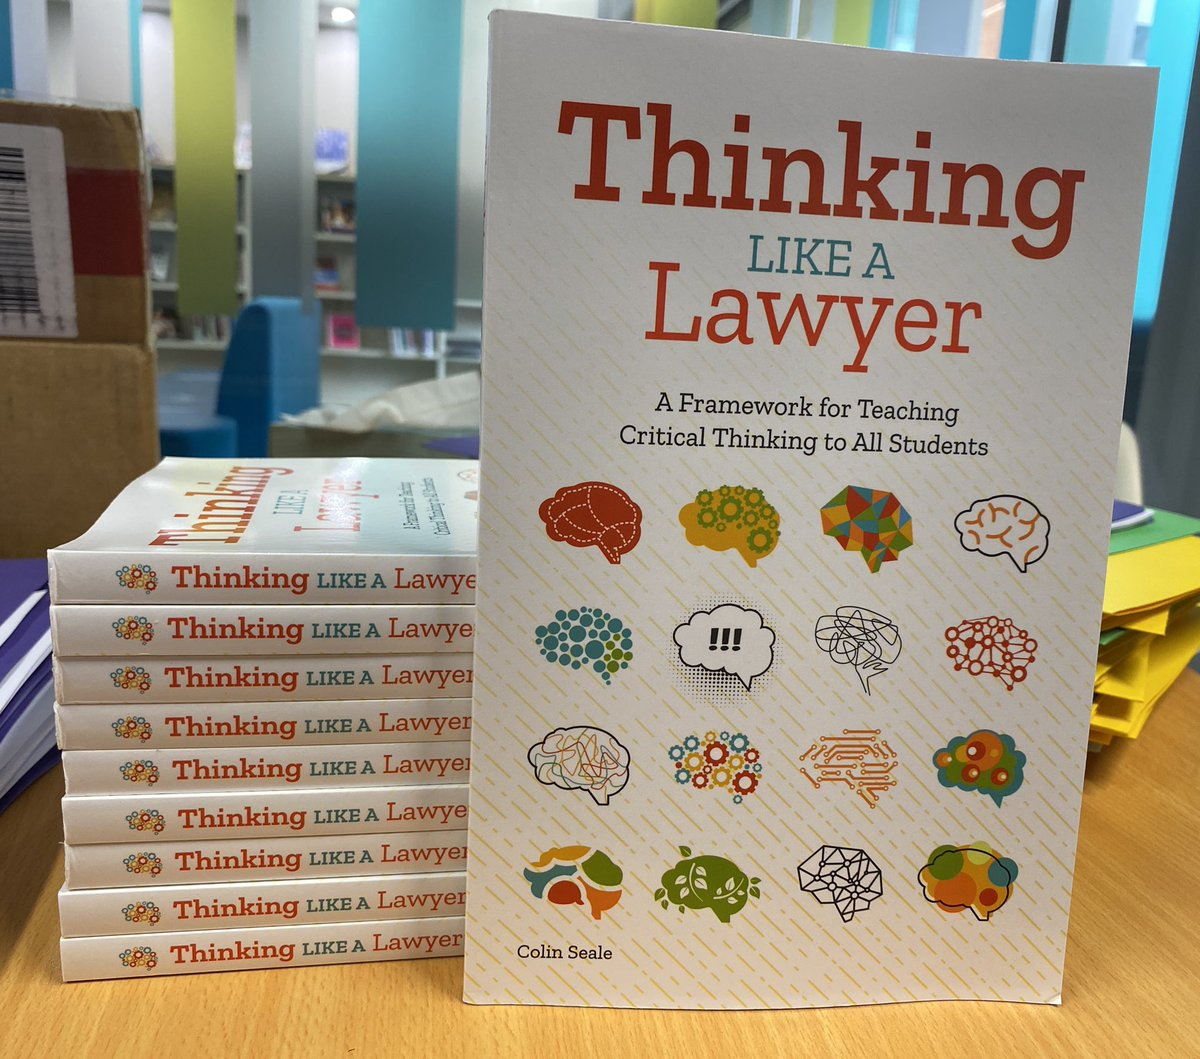 #PLbookclub 2021 sorted @SACSLearn! Looking forward to exploring @ColinESeale #thinkinglikealawyer to support our #giftedstudents . Super fast international shipping, thanks @prufrockpress #gtchat #aussieEd https://t.co/crRyMvzQv3